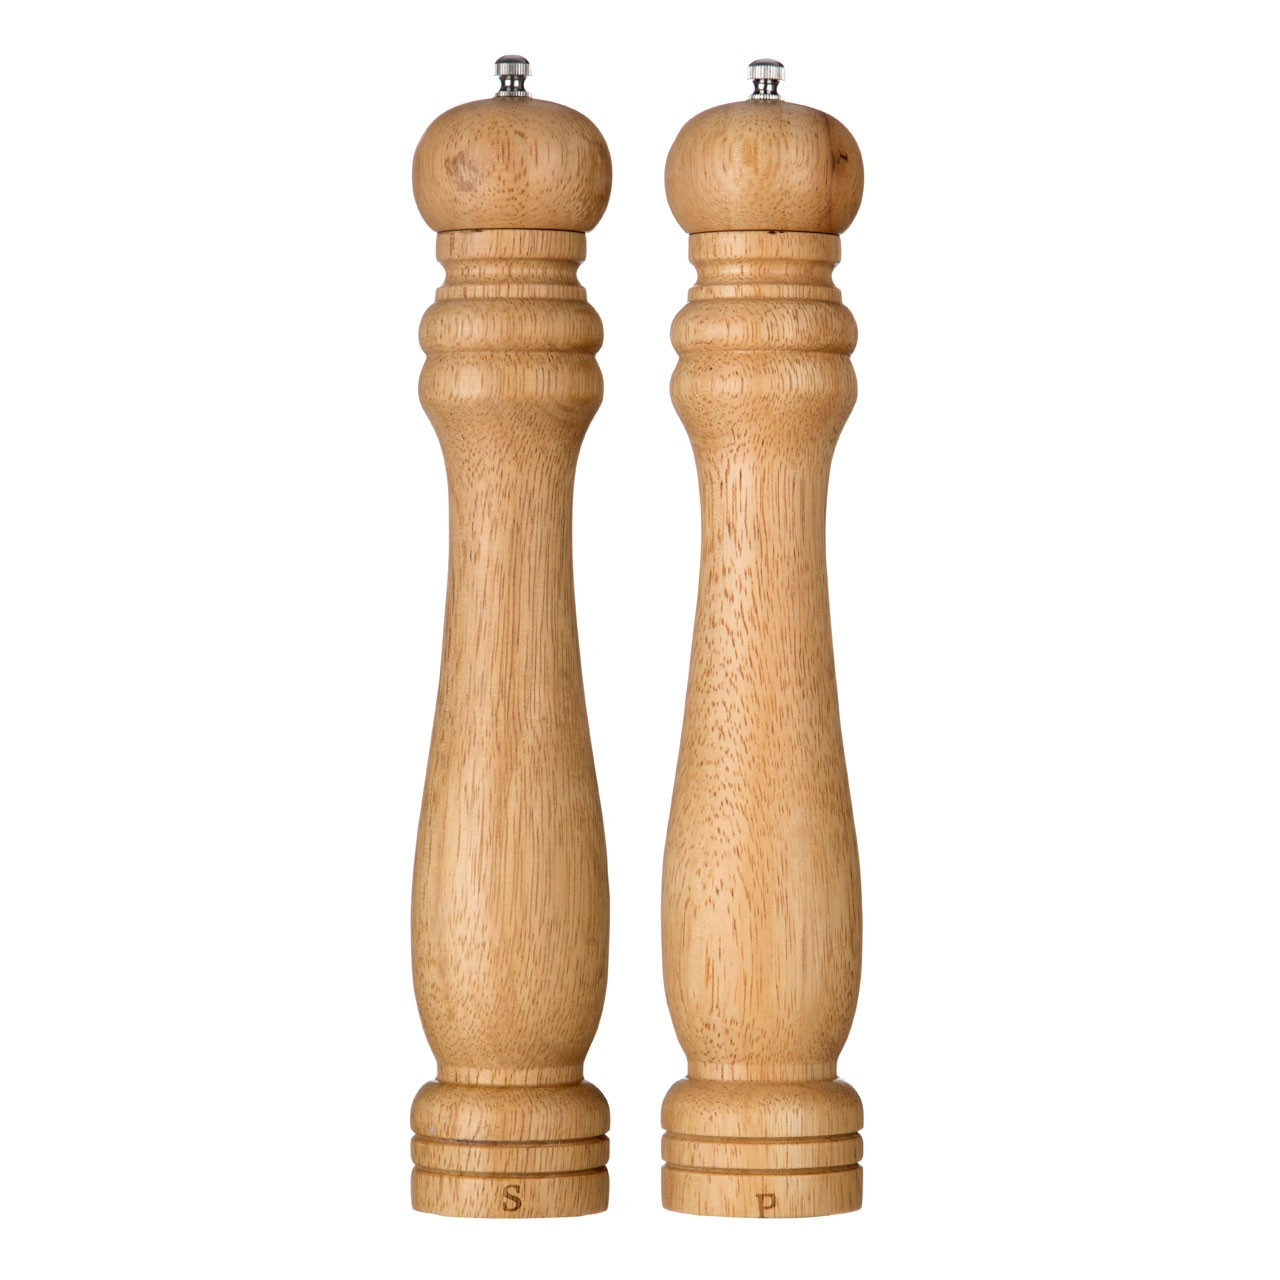 Salt And Pepper Mill Set (12in) Rubberwood Ceramic Grinding